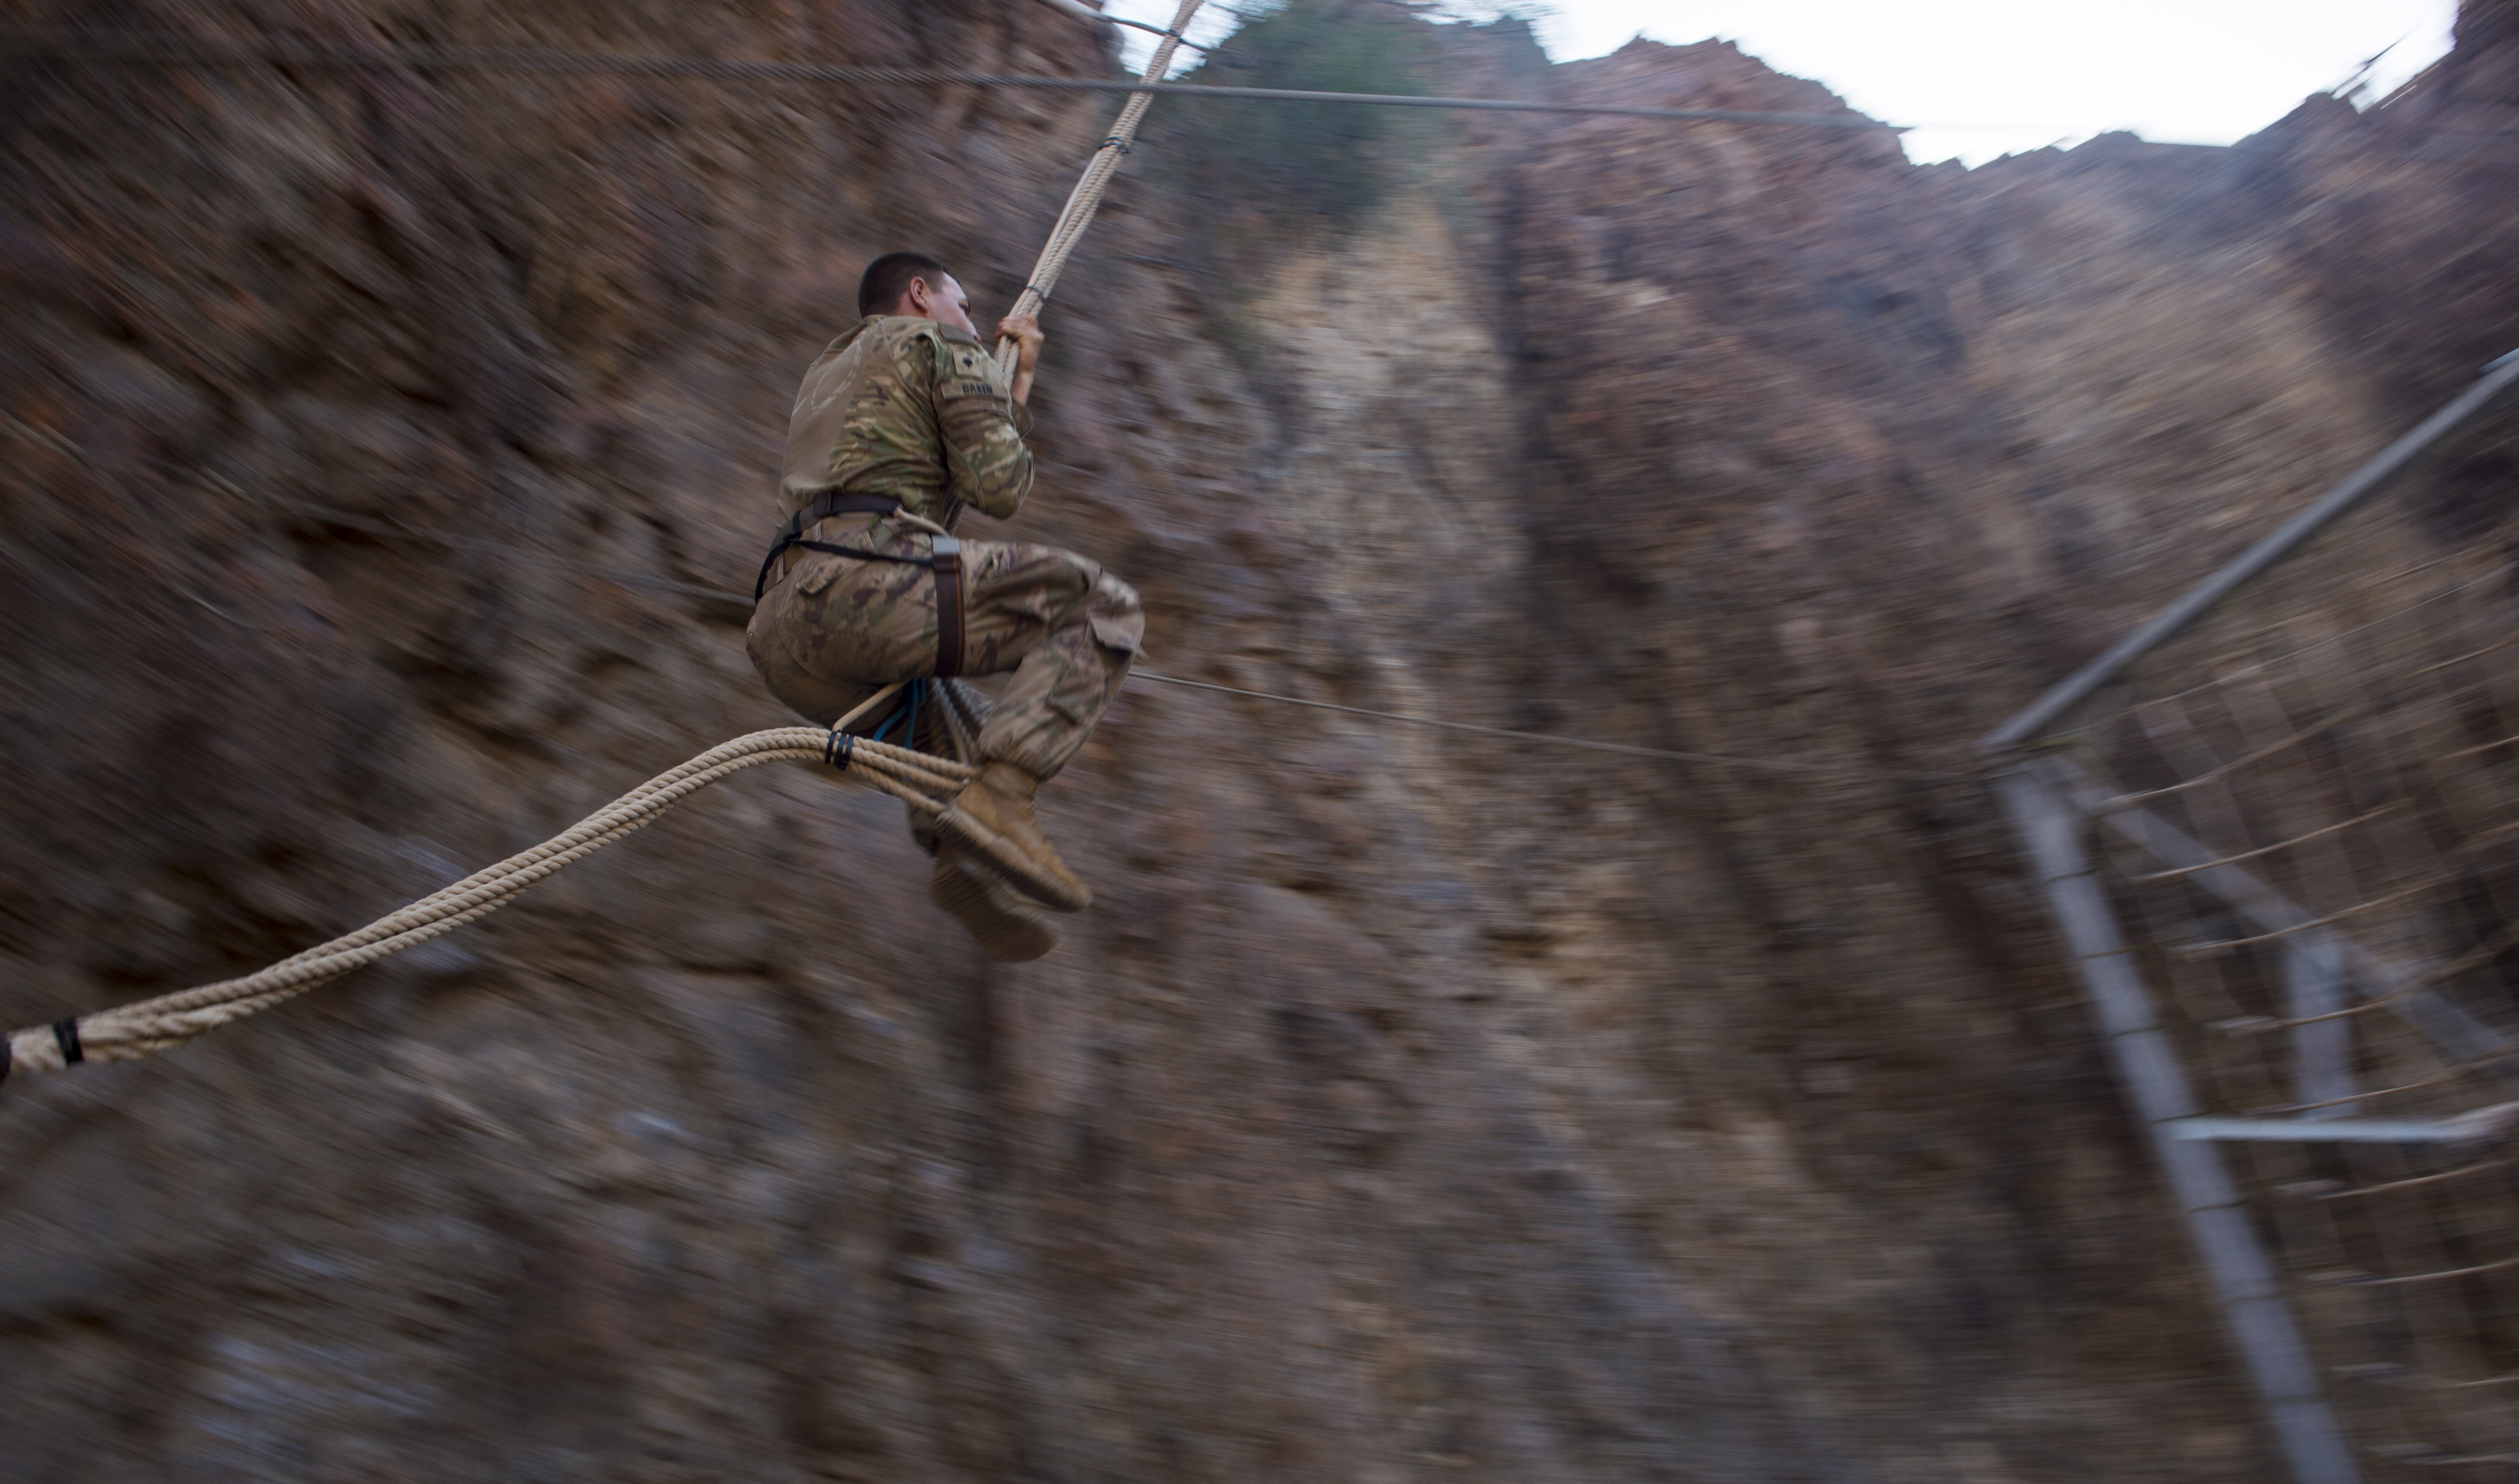 A U.S. Army Soldier assigned to Combined Joint Task Force - Horn of Africa swings to a cargo net during the mountain obstacle portion of the French Desert Command Course held at Arta, Djibouti, Dec. 3, 2017. Thirty U.S. service members participated in the obstacle course alongside French marines assigned to the 5th Overseas Interarms Regiment, Djibouti. (U.S. Air Force photo by Staff Sgt. Timothy Moore)